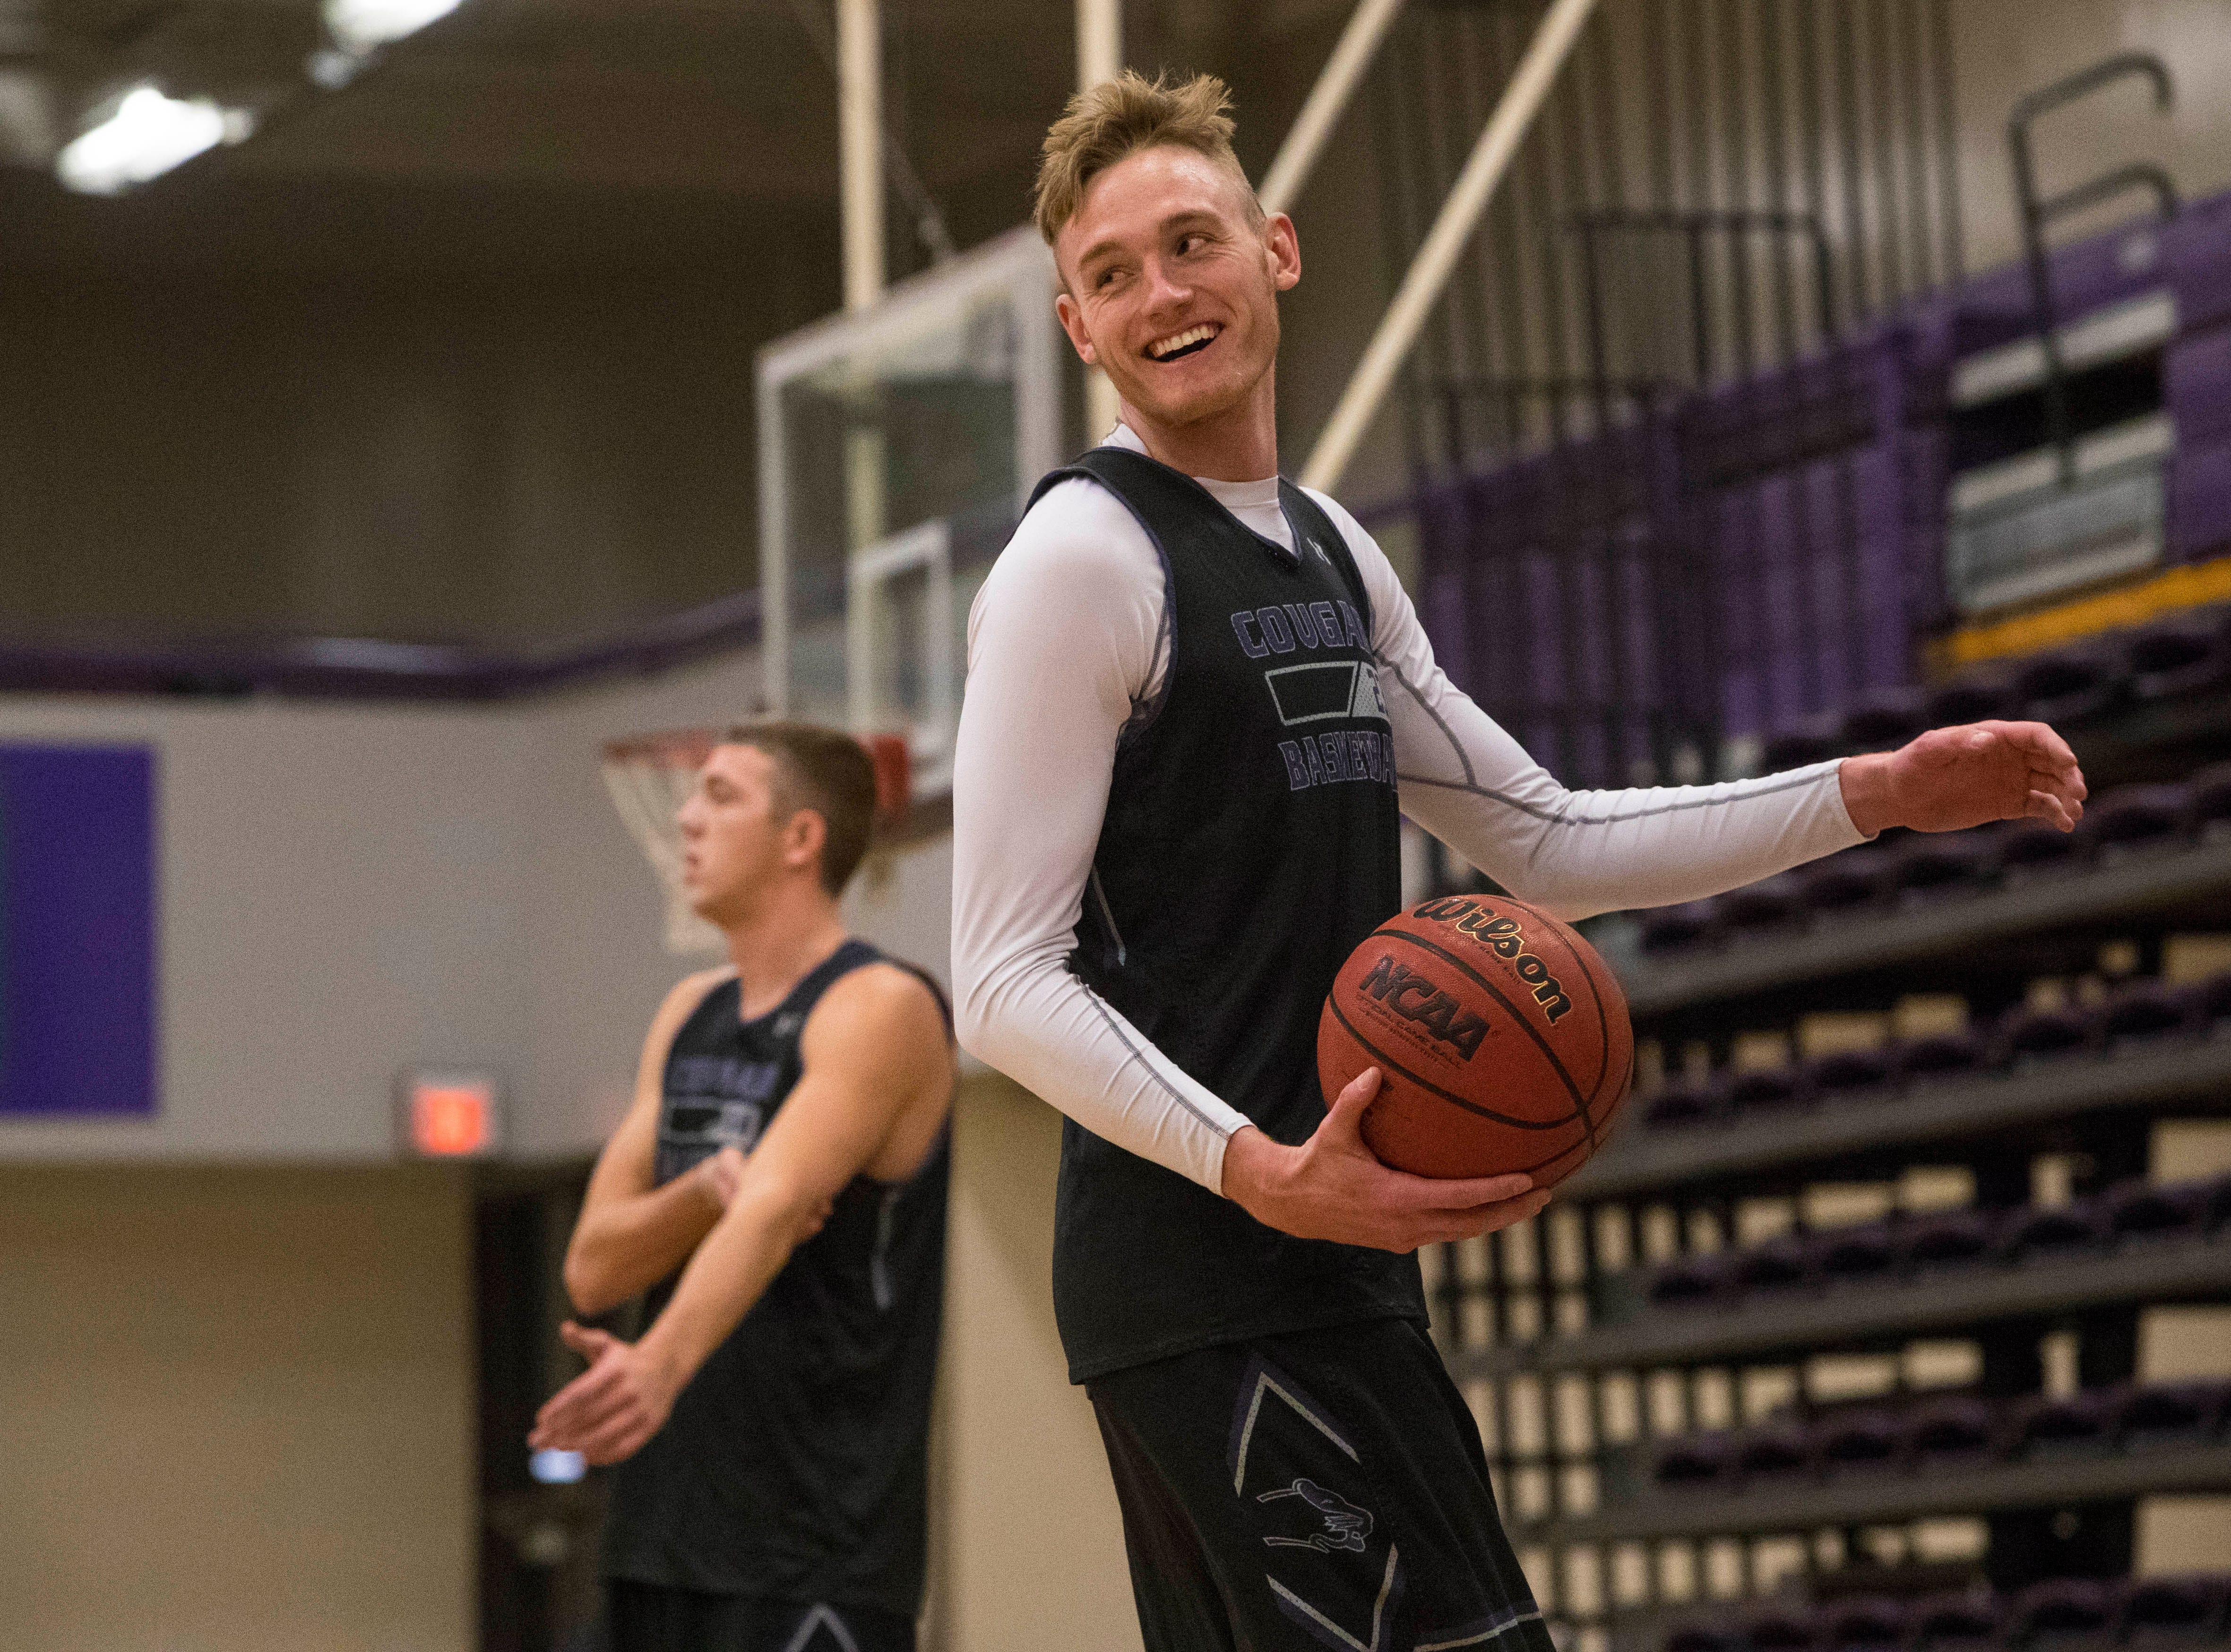 Off and running: Fast start has USF Cougars thinking big